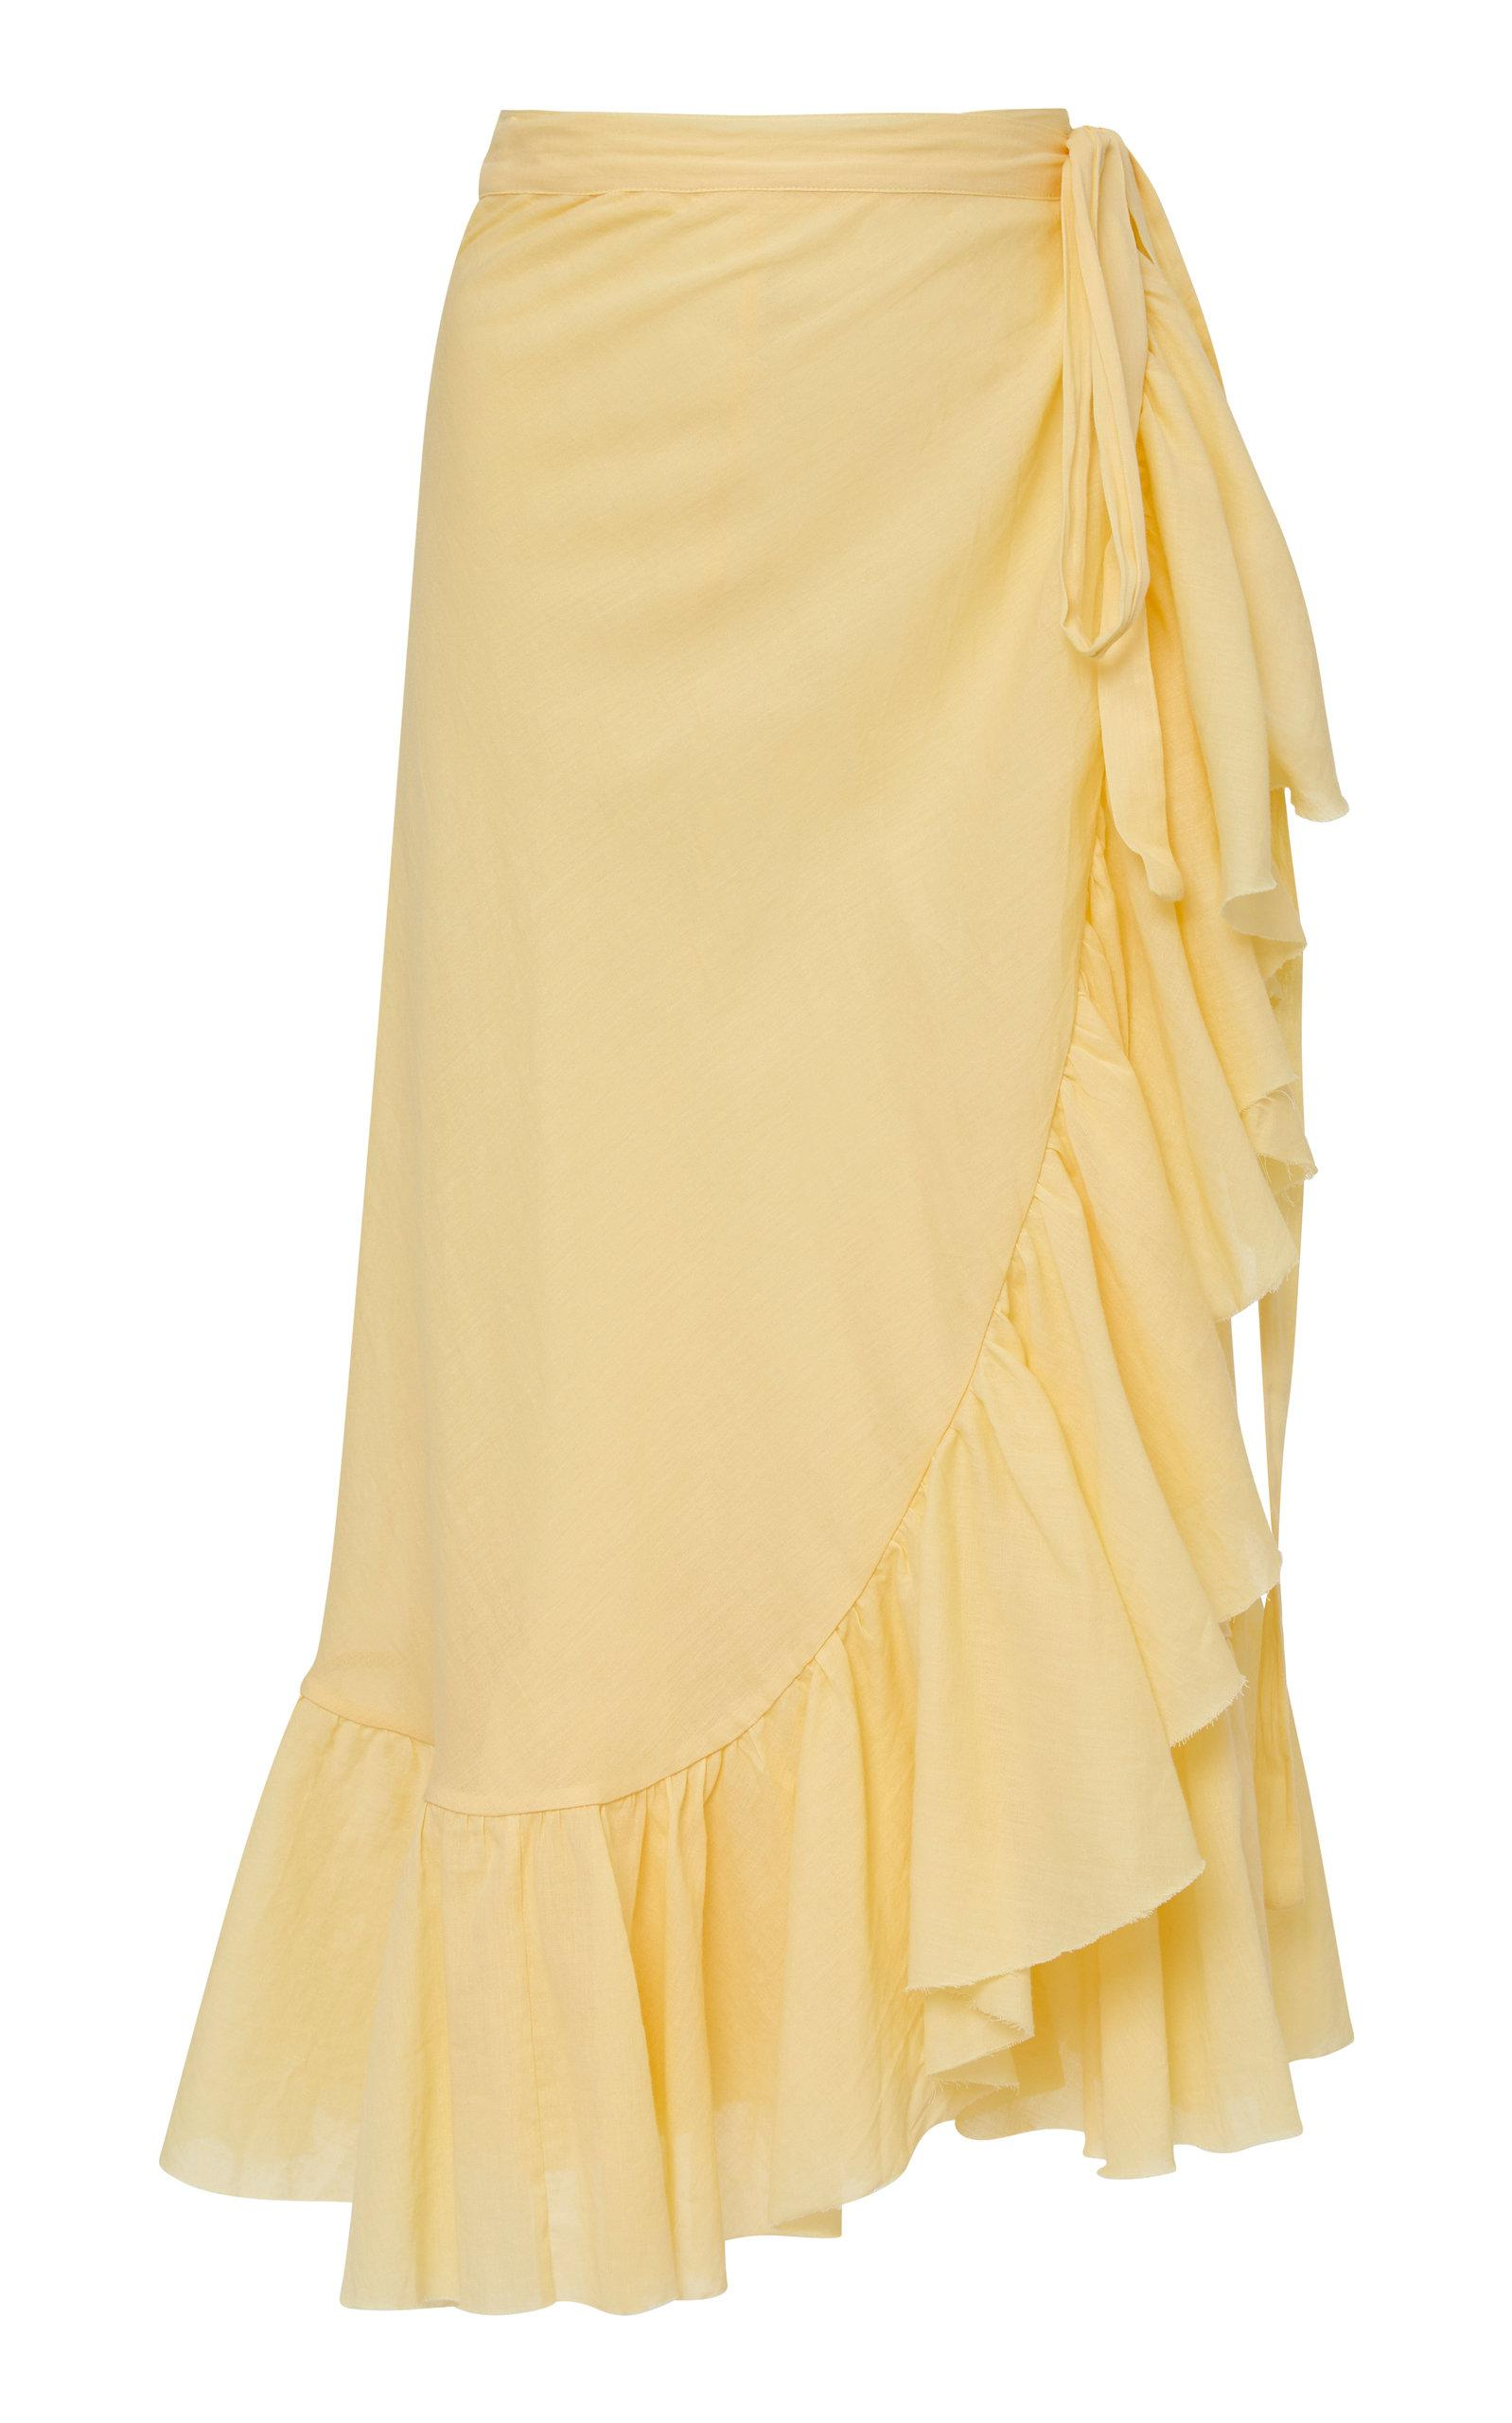 7017155f02 Lyst - Loup Charmant Ruffle Cotton Wrap Skirt in Yellow